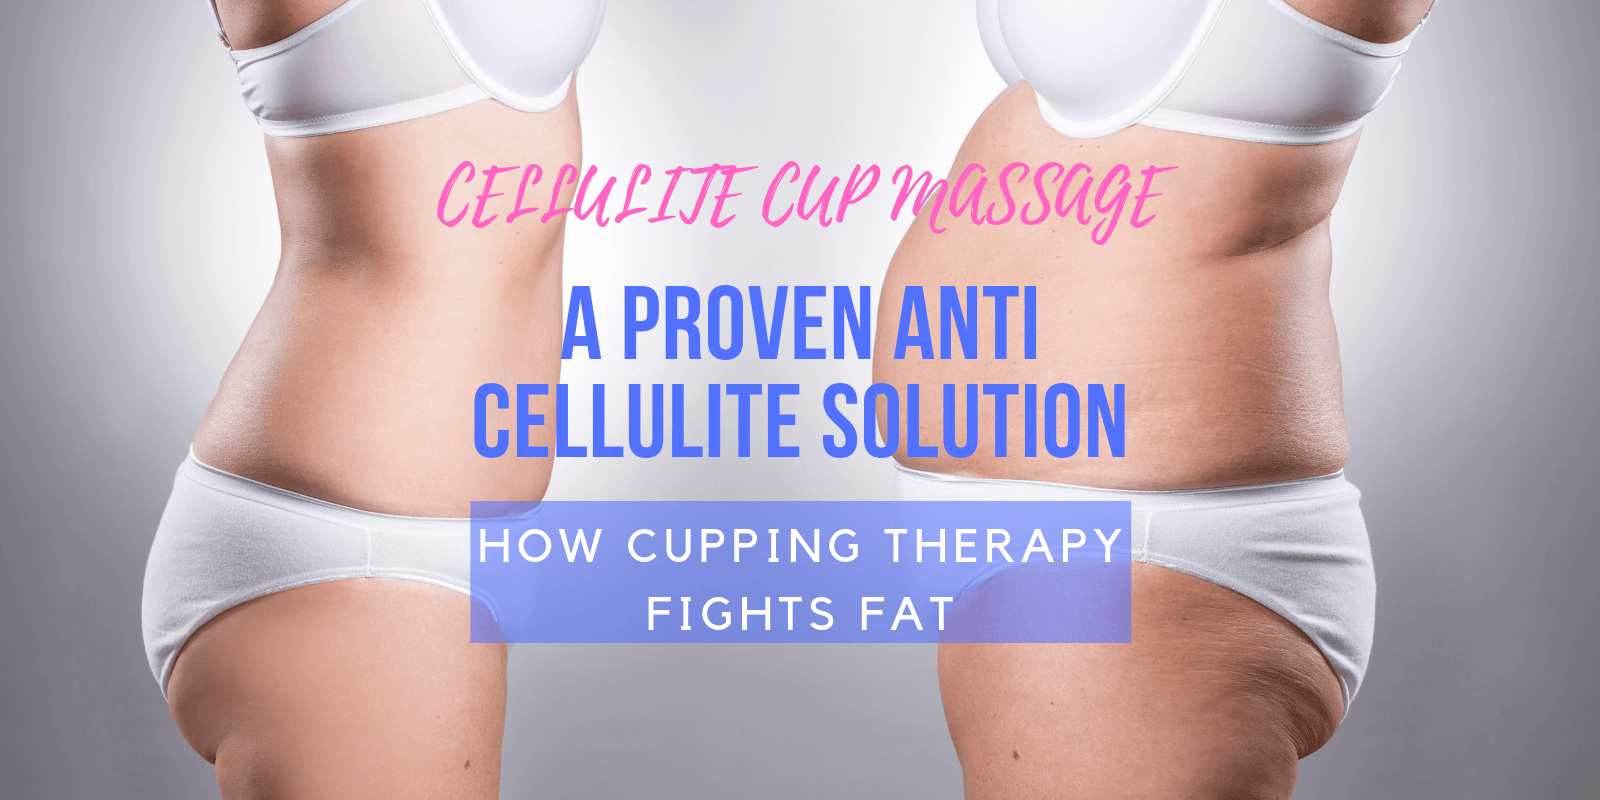 Cellulite Cup Massage, a Proven Anti Cellulite Solution - How Cupping Therapy Fights Fat - Lure Essentials